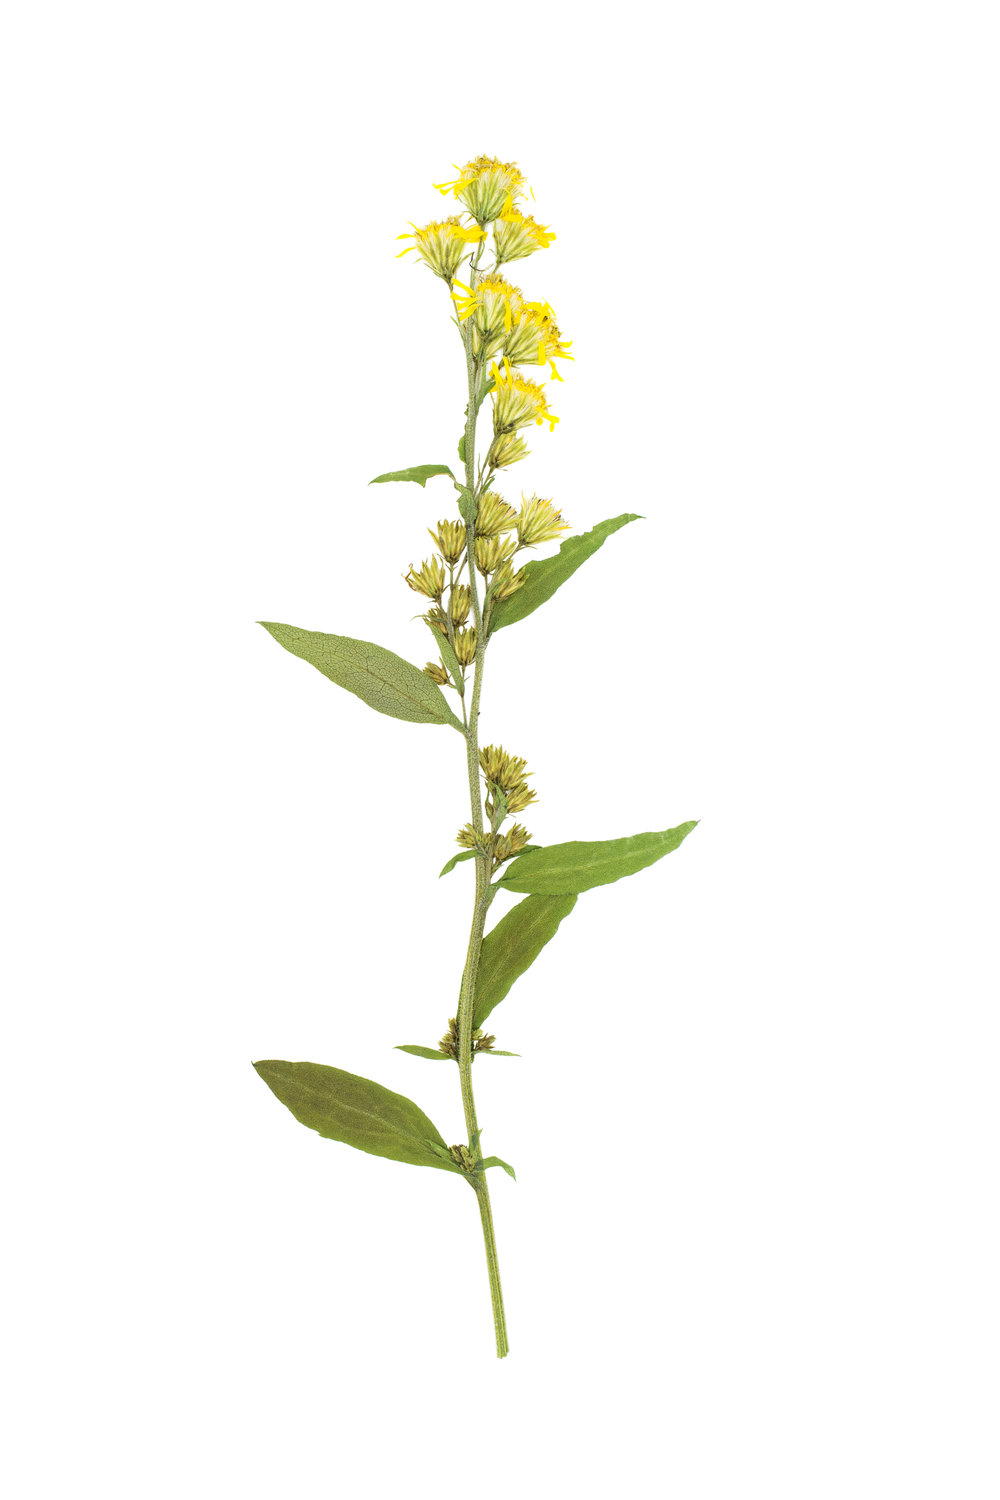 Solidago virgaurea / European Goldenrod